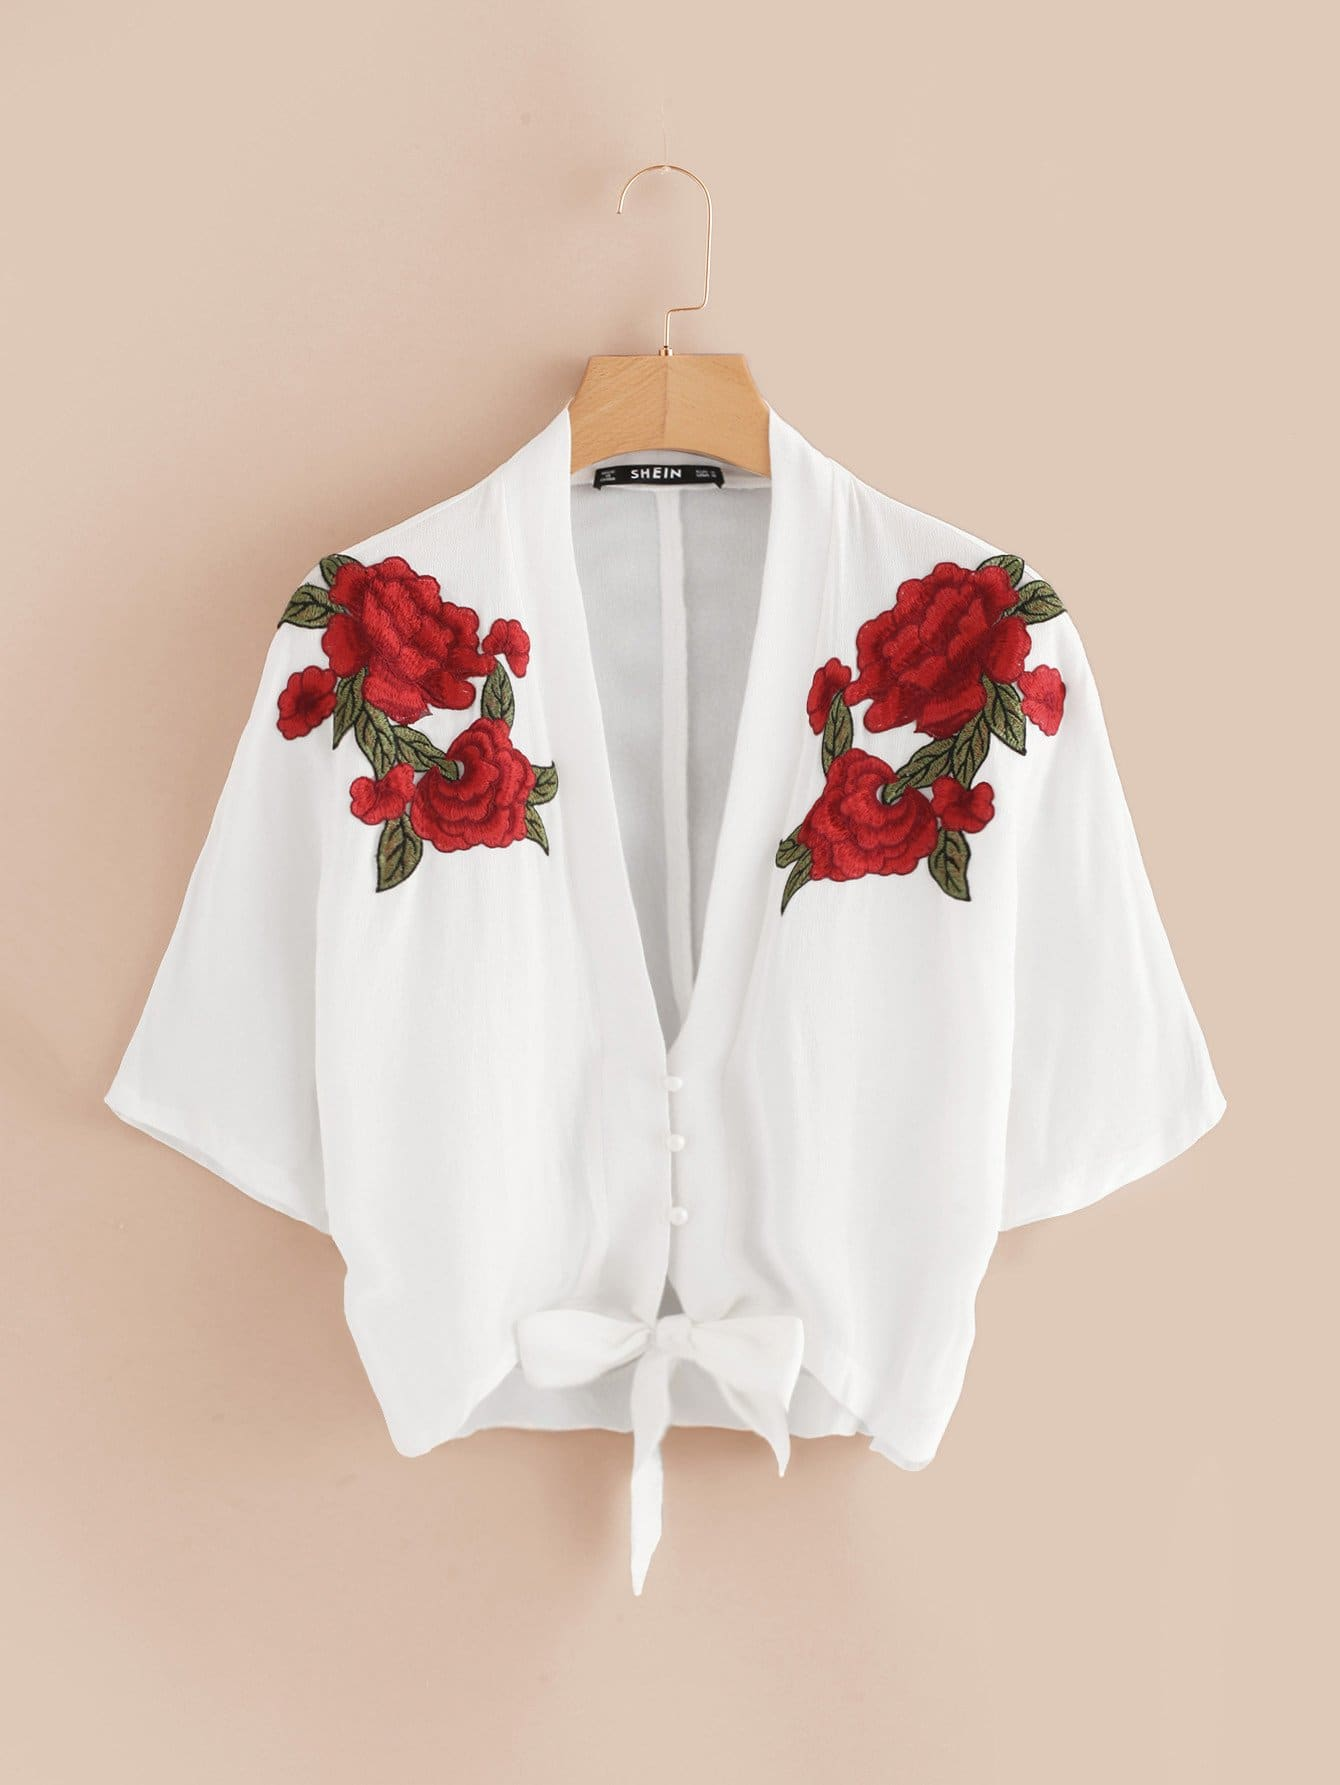 Floral Embroidered Applique Knot Front Kimono embroidery applique knot back fitted